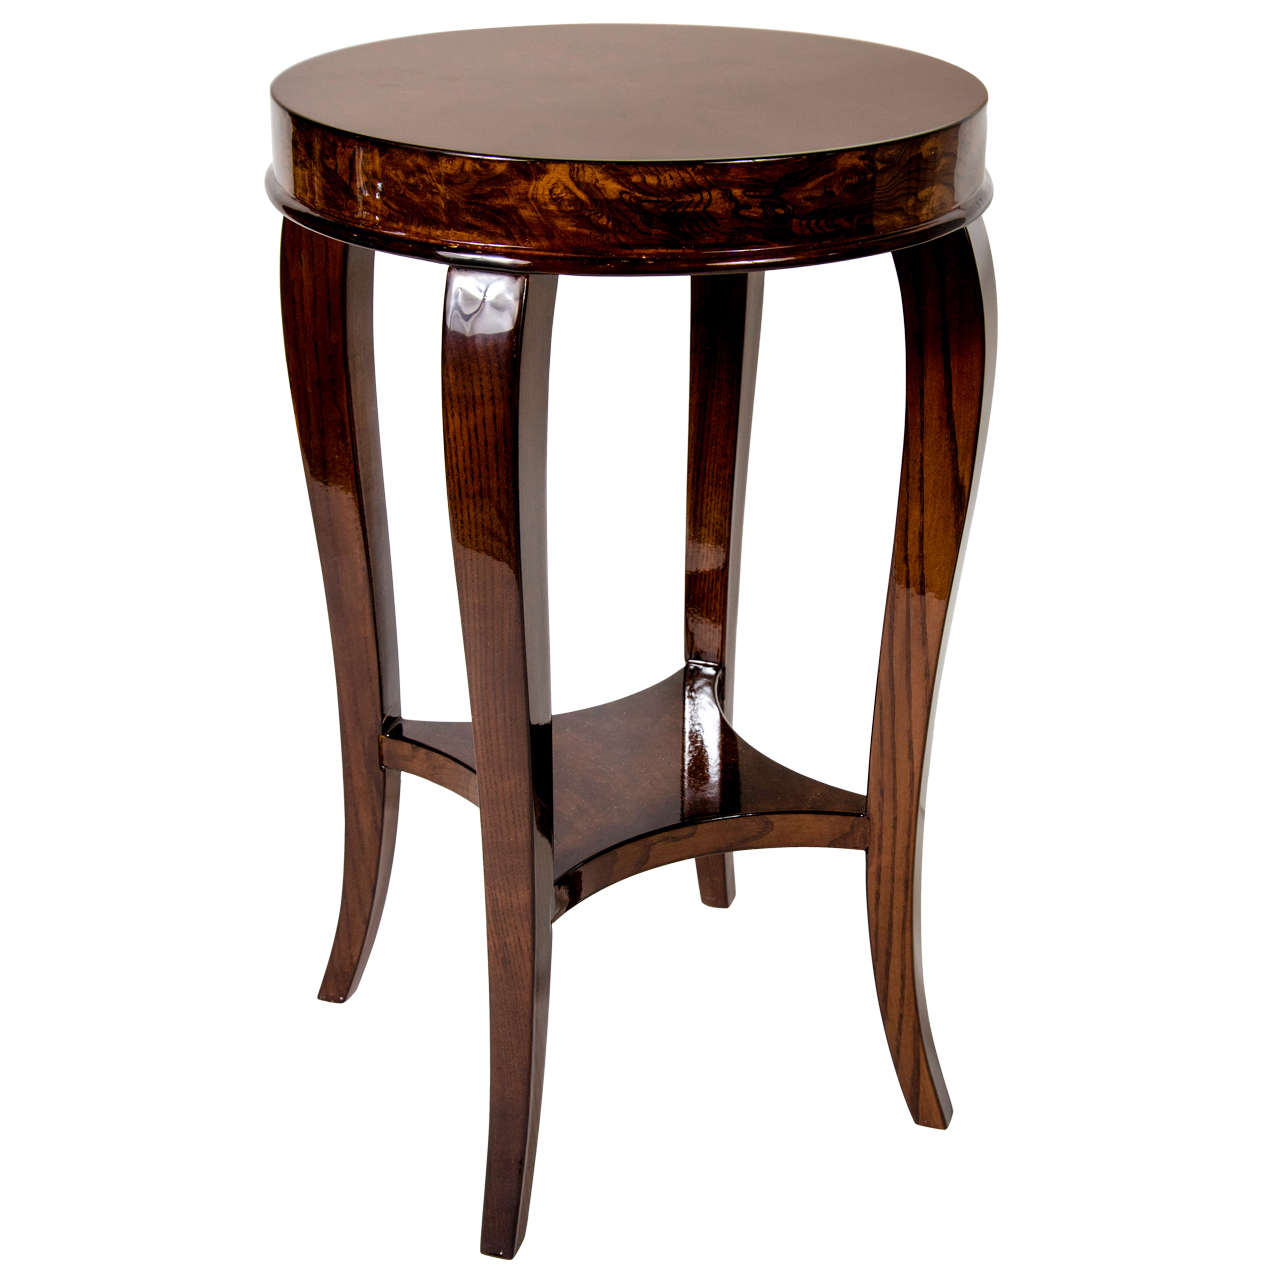 Gorgeous Art Deco Two-Tiered Occasional/End Table 1